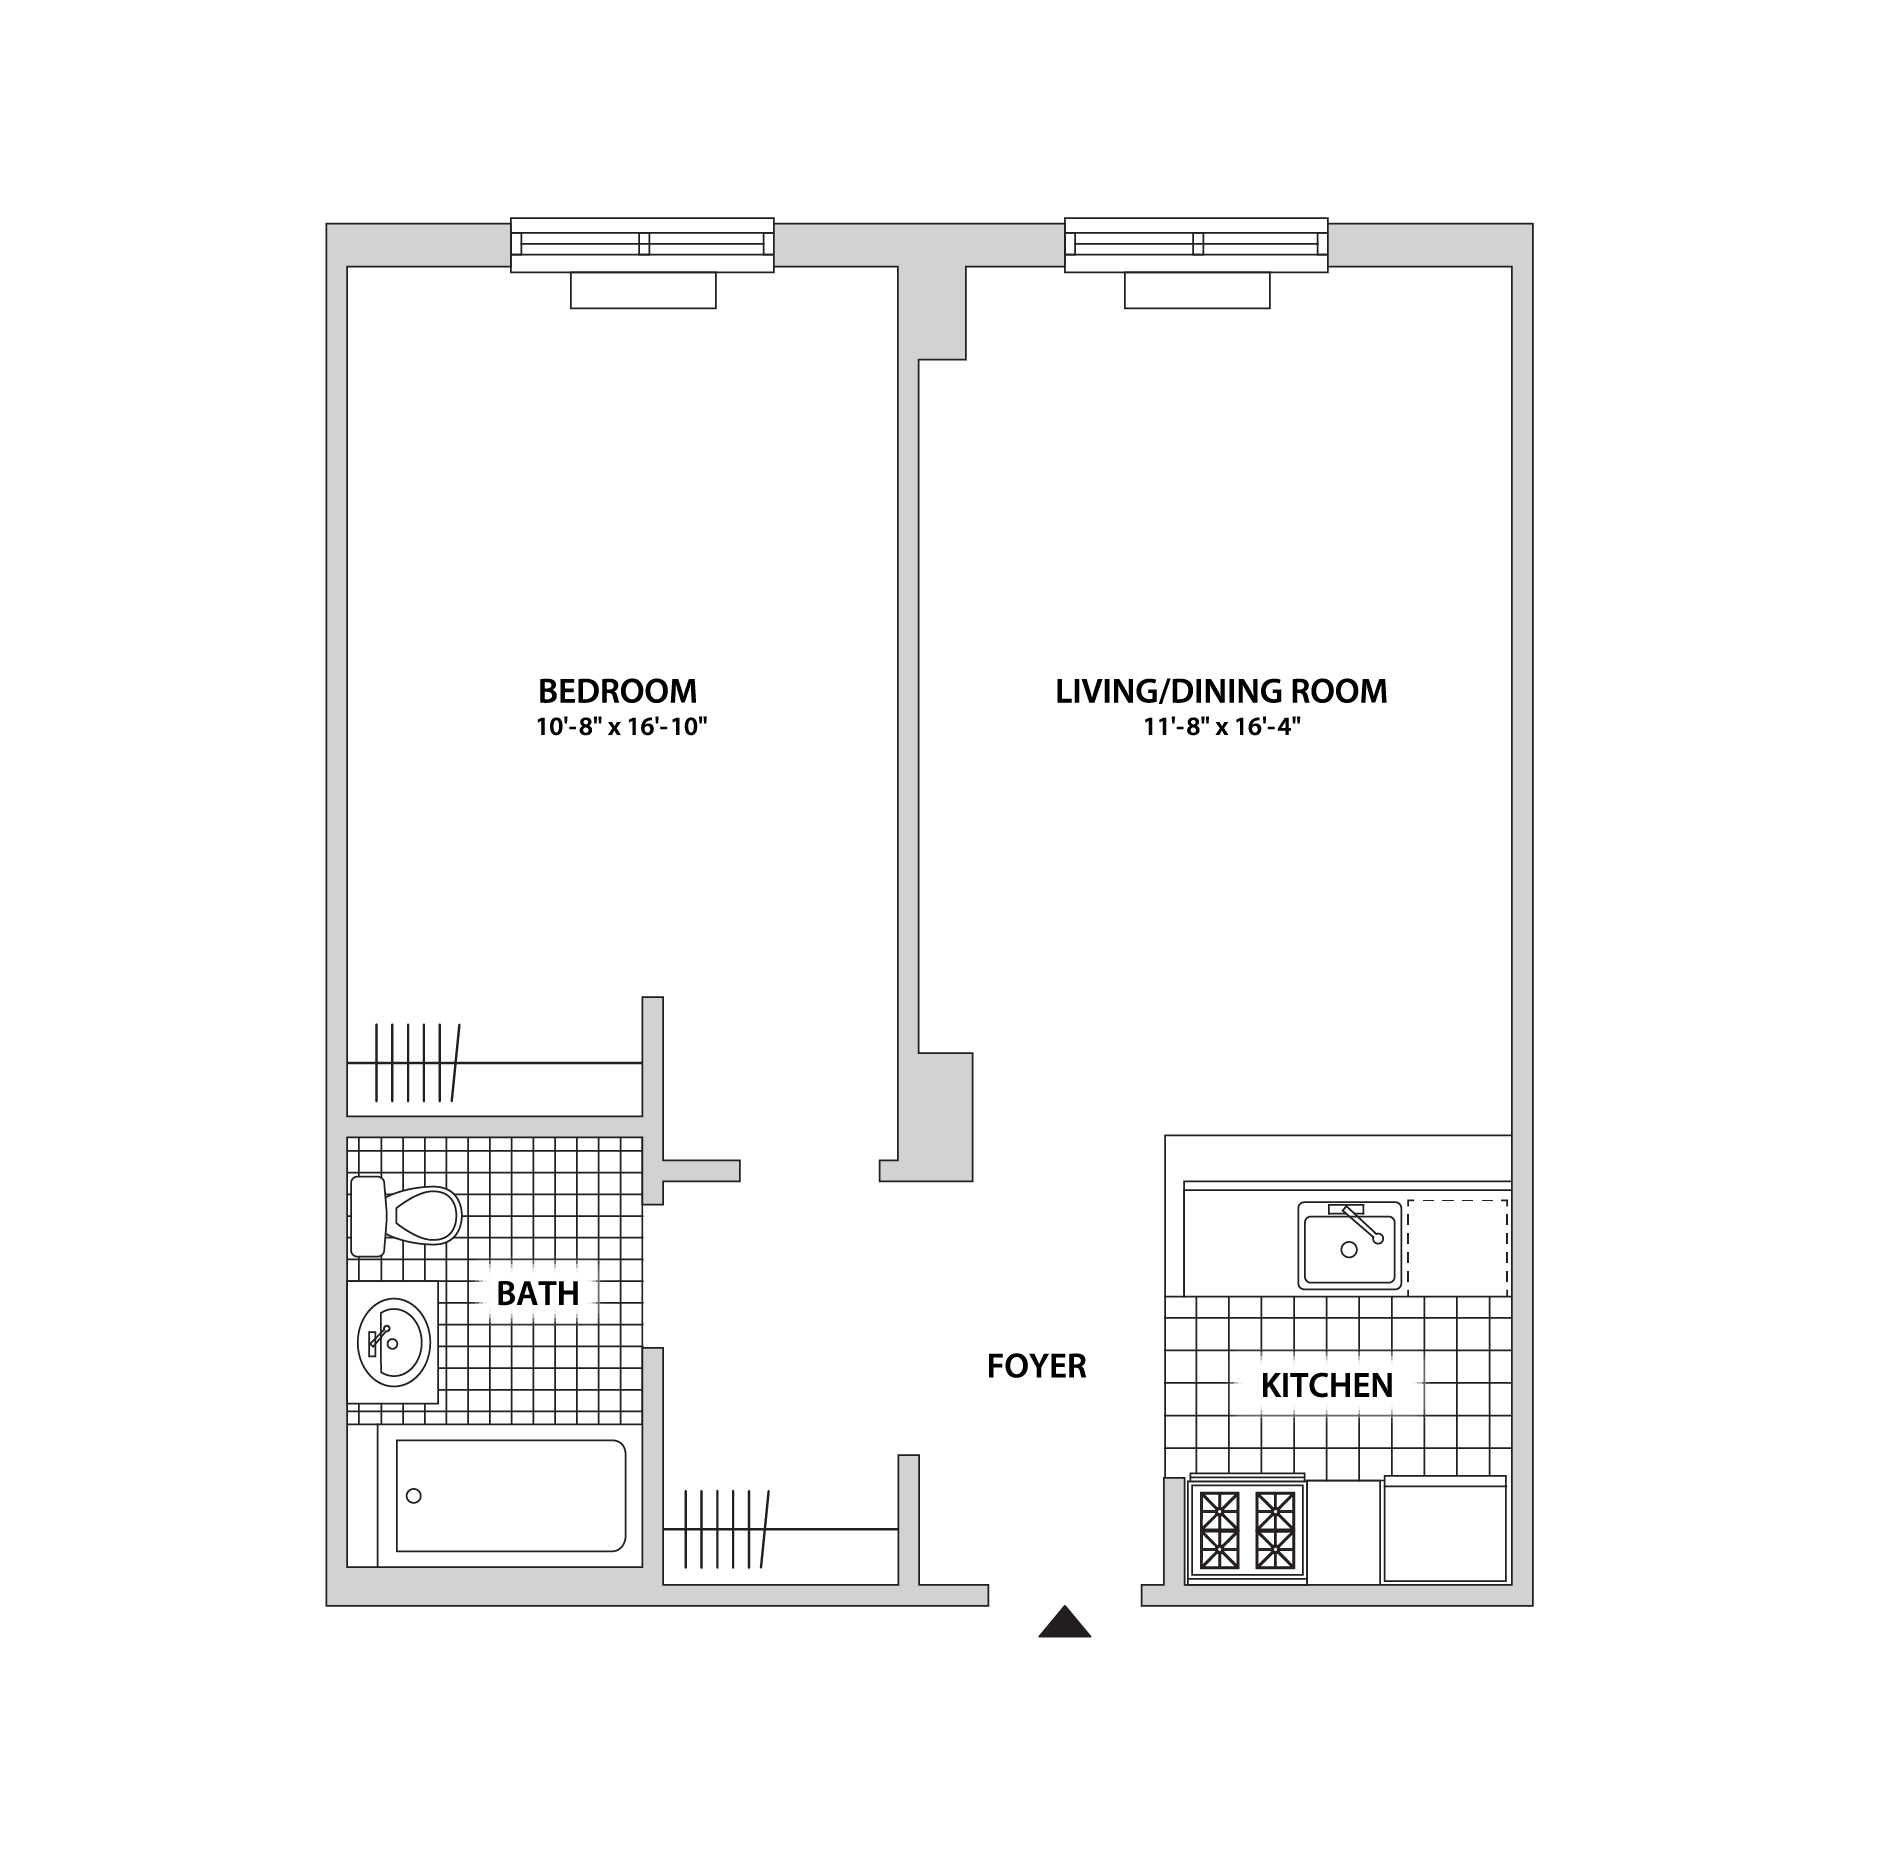 ... 3 231623 1732106Floor Plans Observer Park Apartments The Bozzuto Group  Bozzuto; 10 X 16 Kitchen Layout Design Decorating Classy Simple ... Part 40